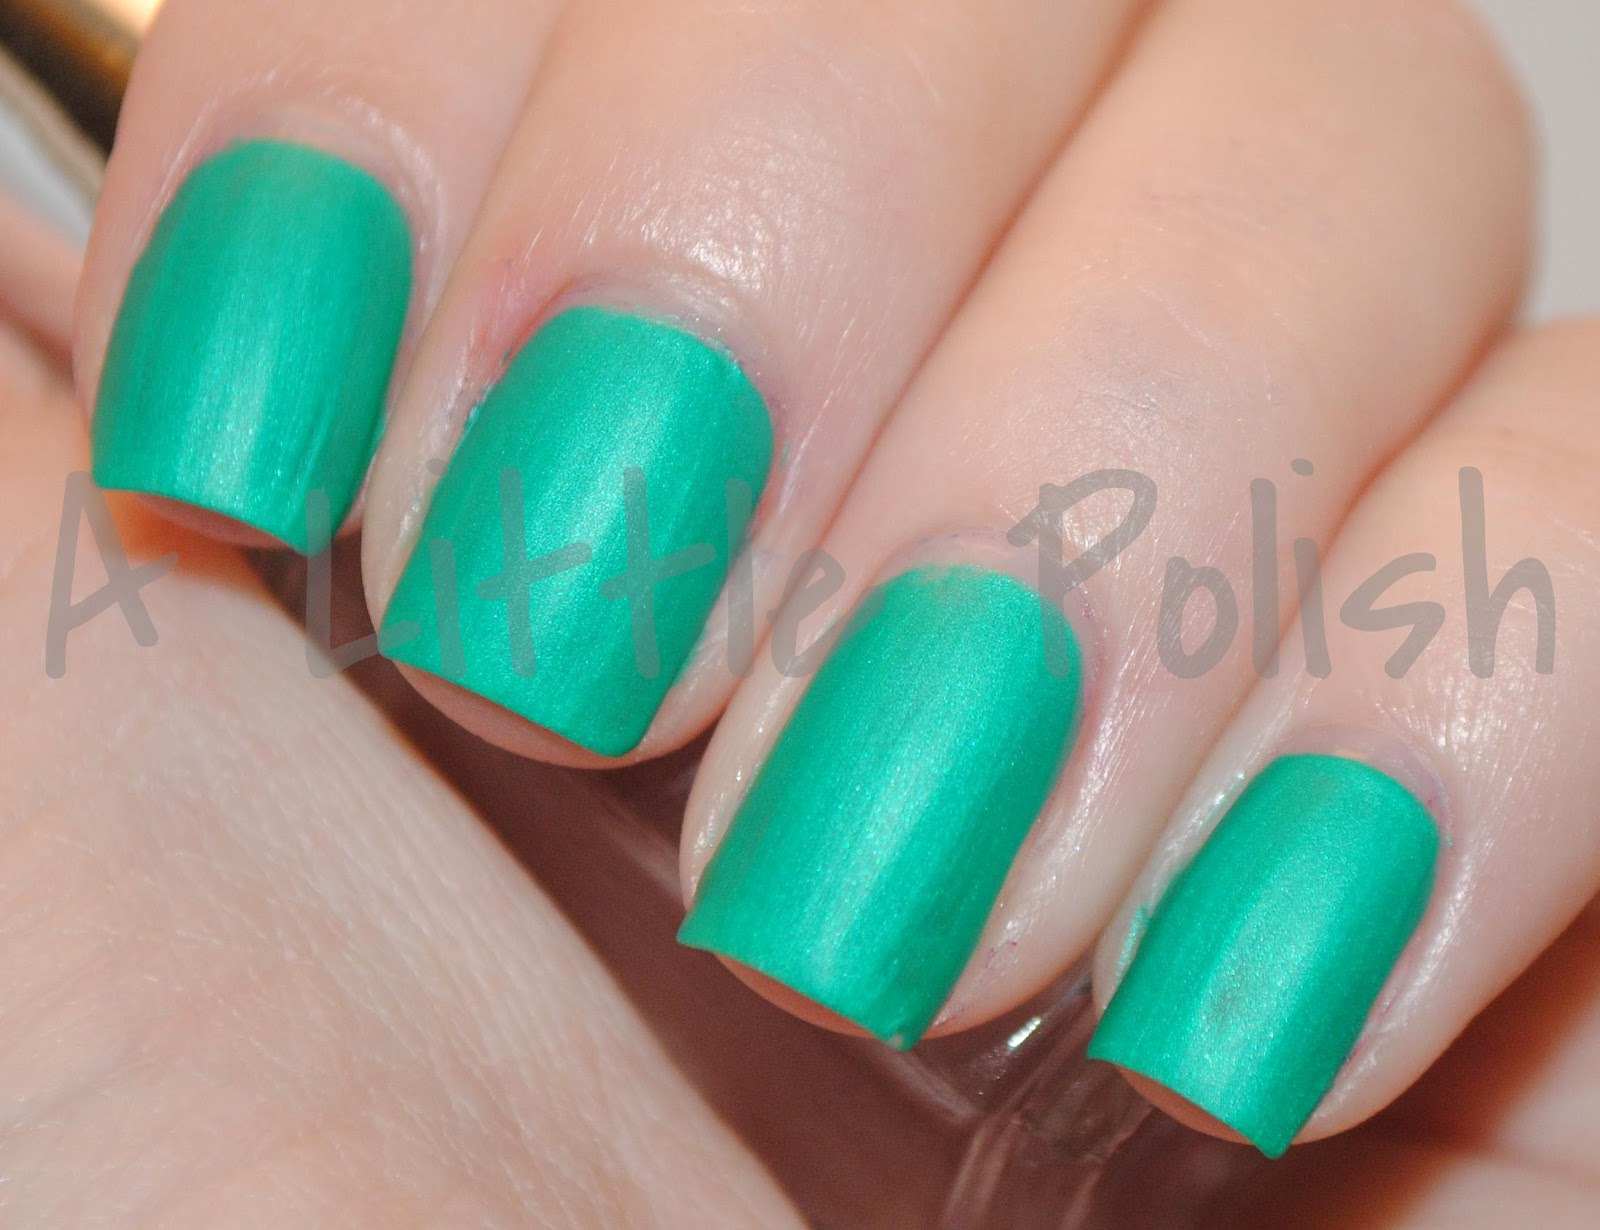 A Little Polish: China Glaze - Turned Up Turquoise